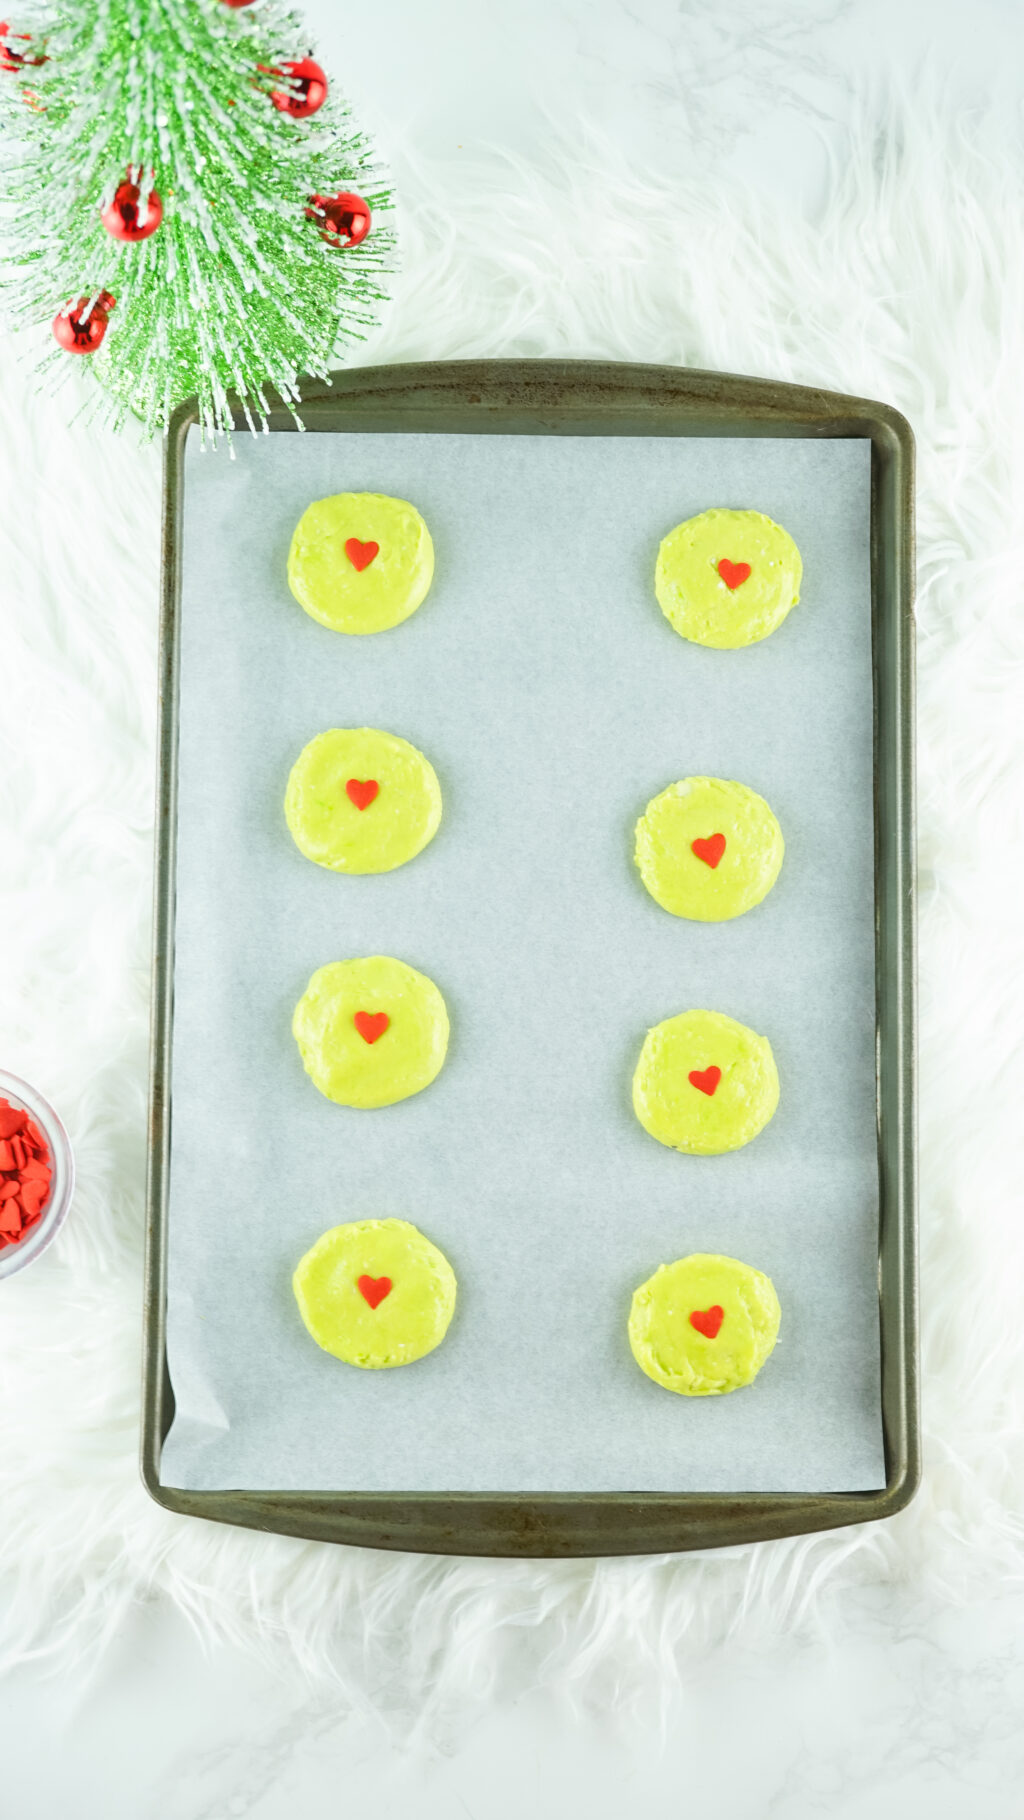 green cookie dough with red heart sprinkles on a baking sheet